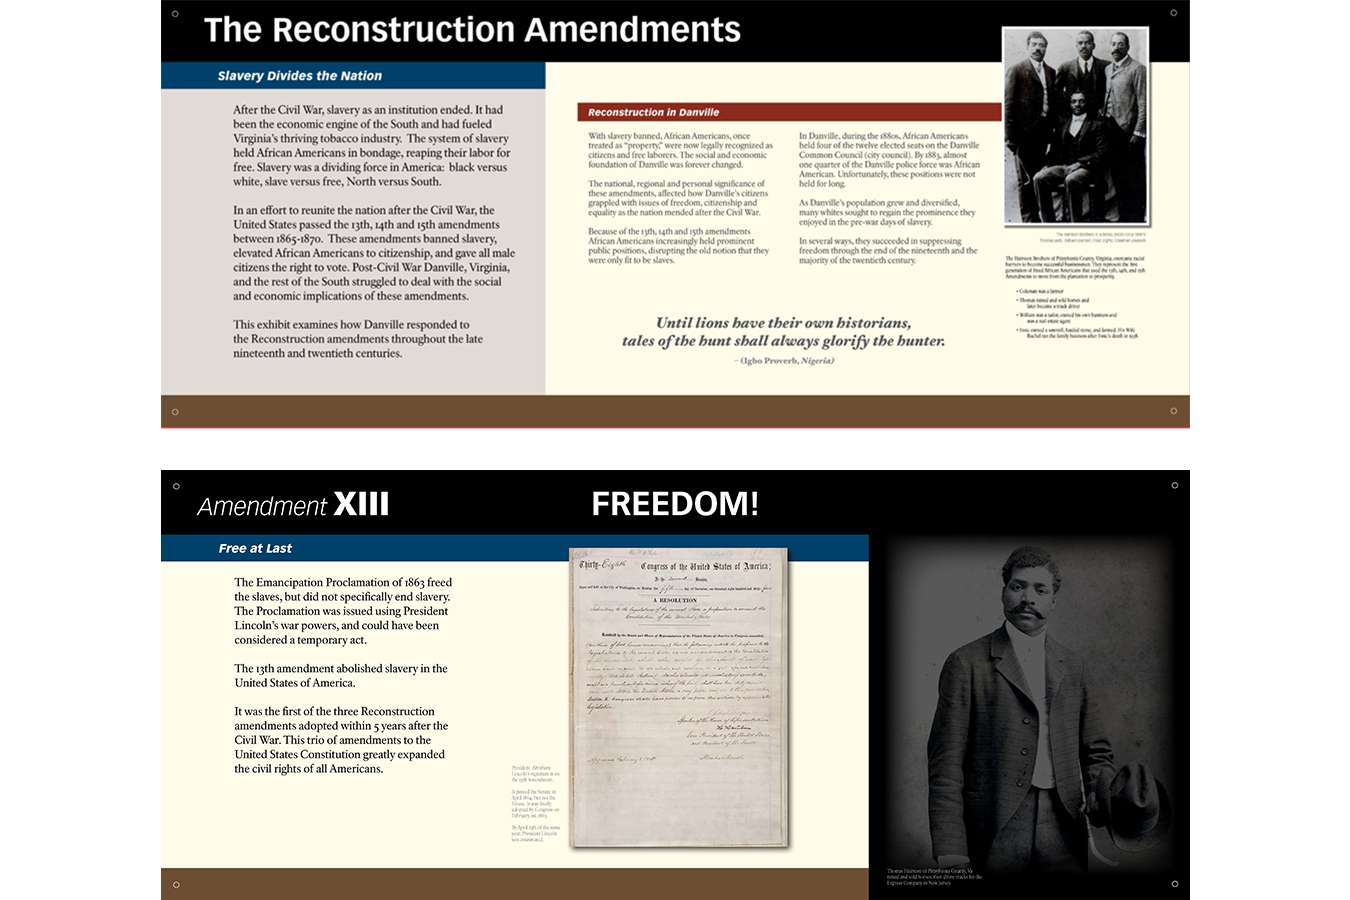 DMFAH 1,2 : Reconstruction Amendments, Jim Crow and Civil Rights are explored in this exhibit